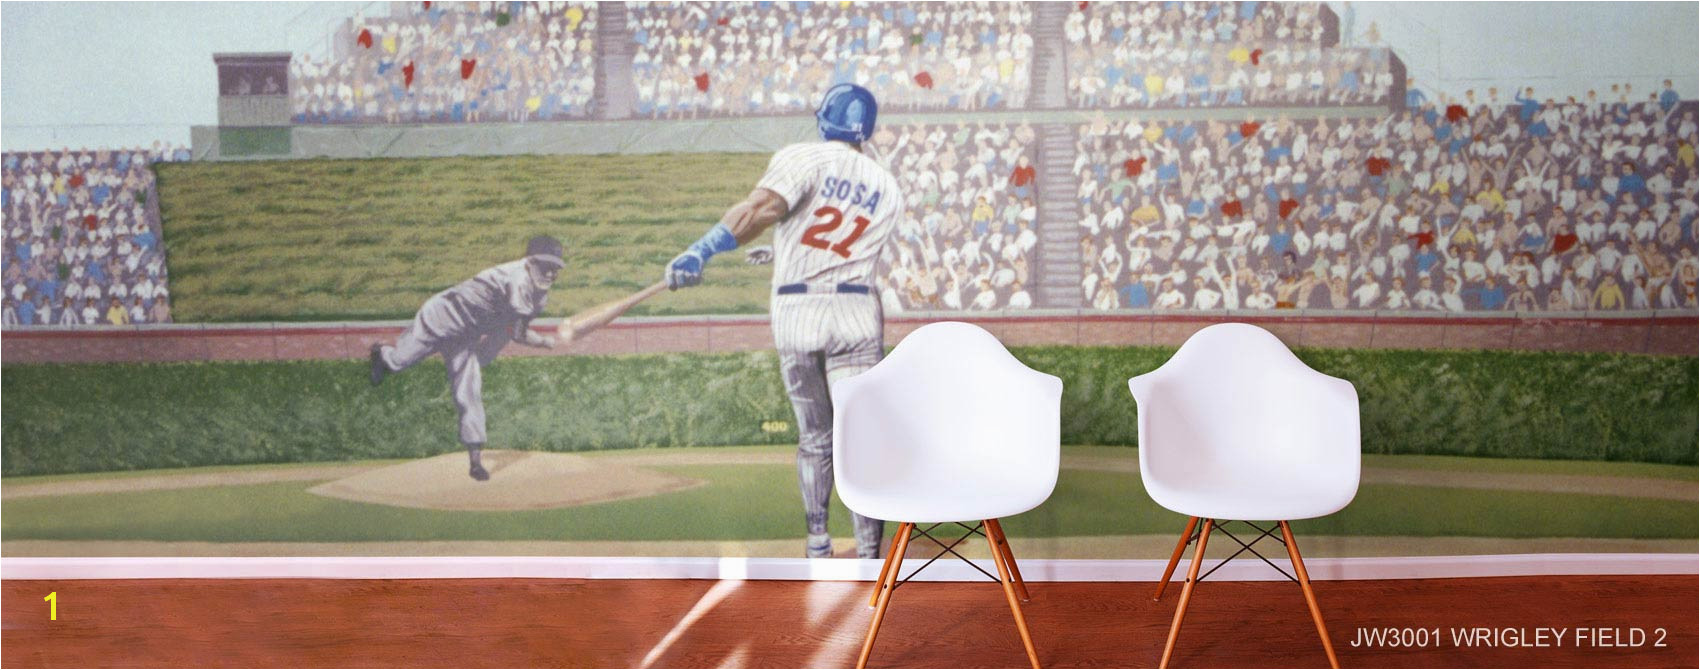 Baseball Wall Murals Wallpaper Your Way